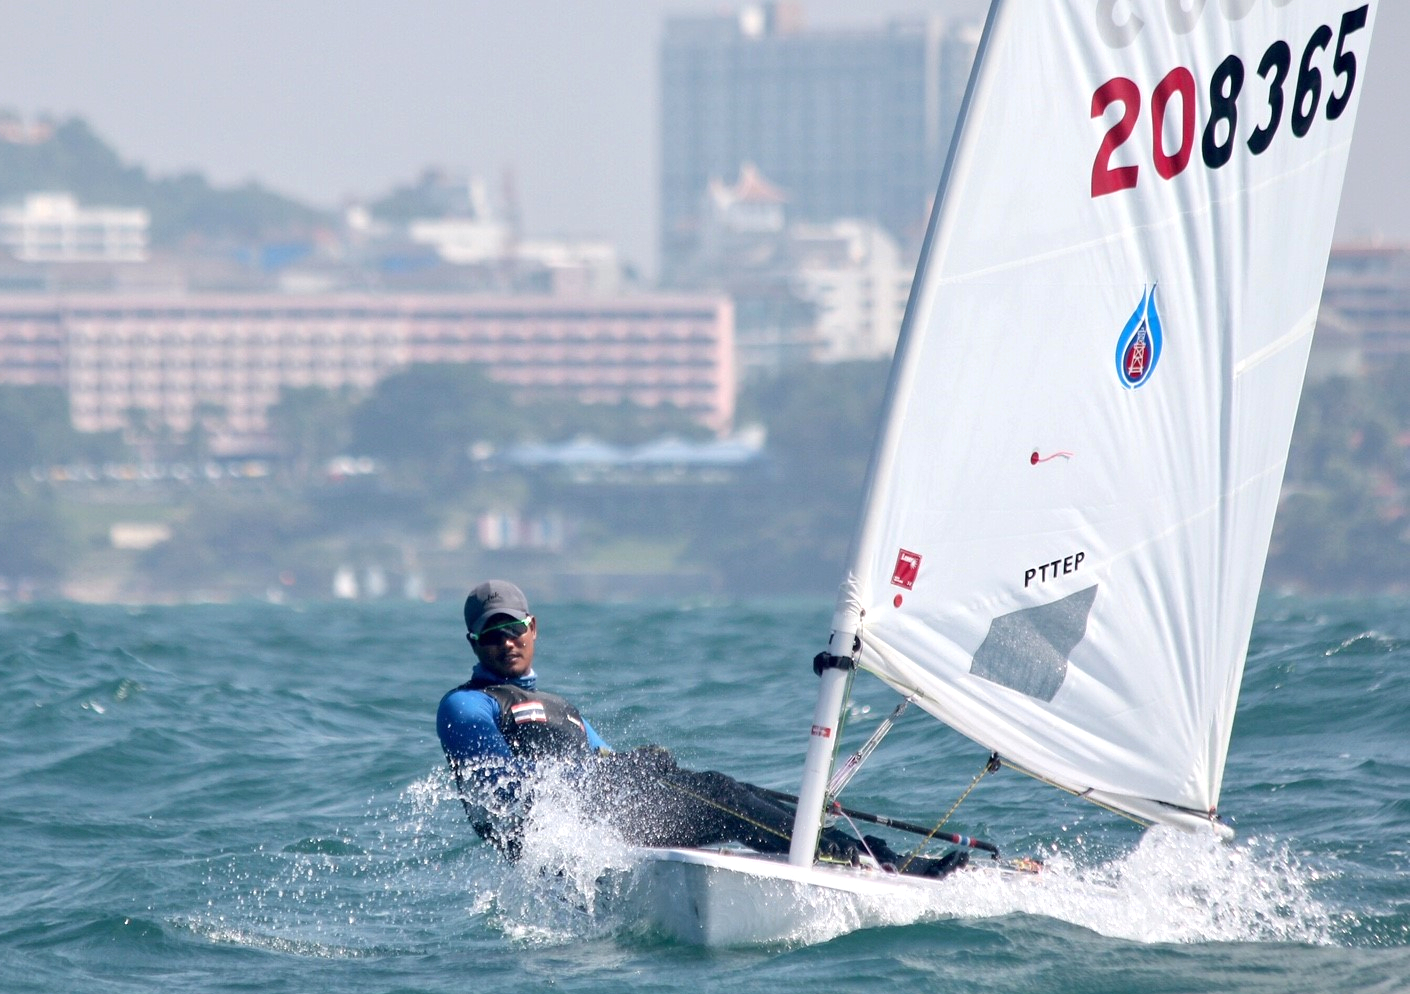 Keerati Bualong leads the Laser Standard fleet heading to the first mark.